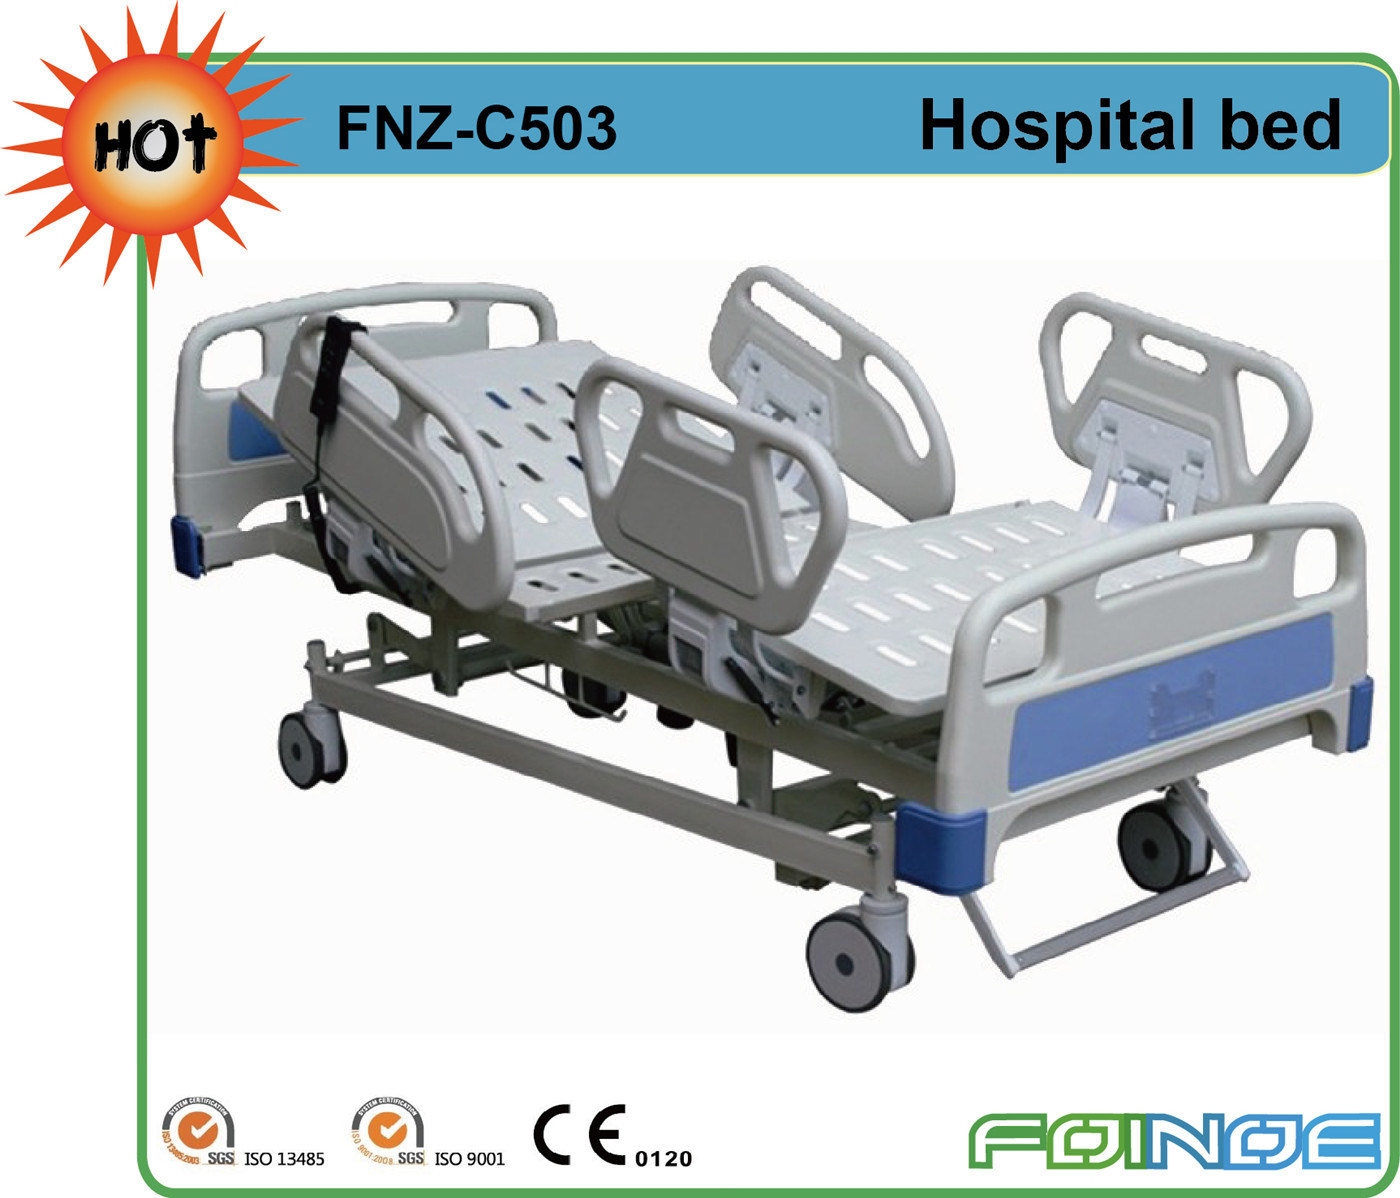 Fnz-C503 Sizes for Hospital Bed with CE